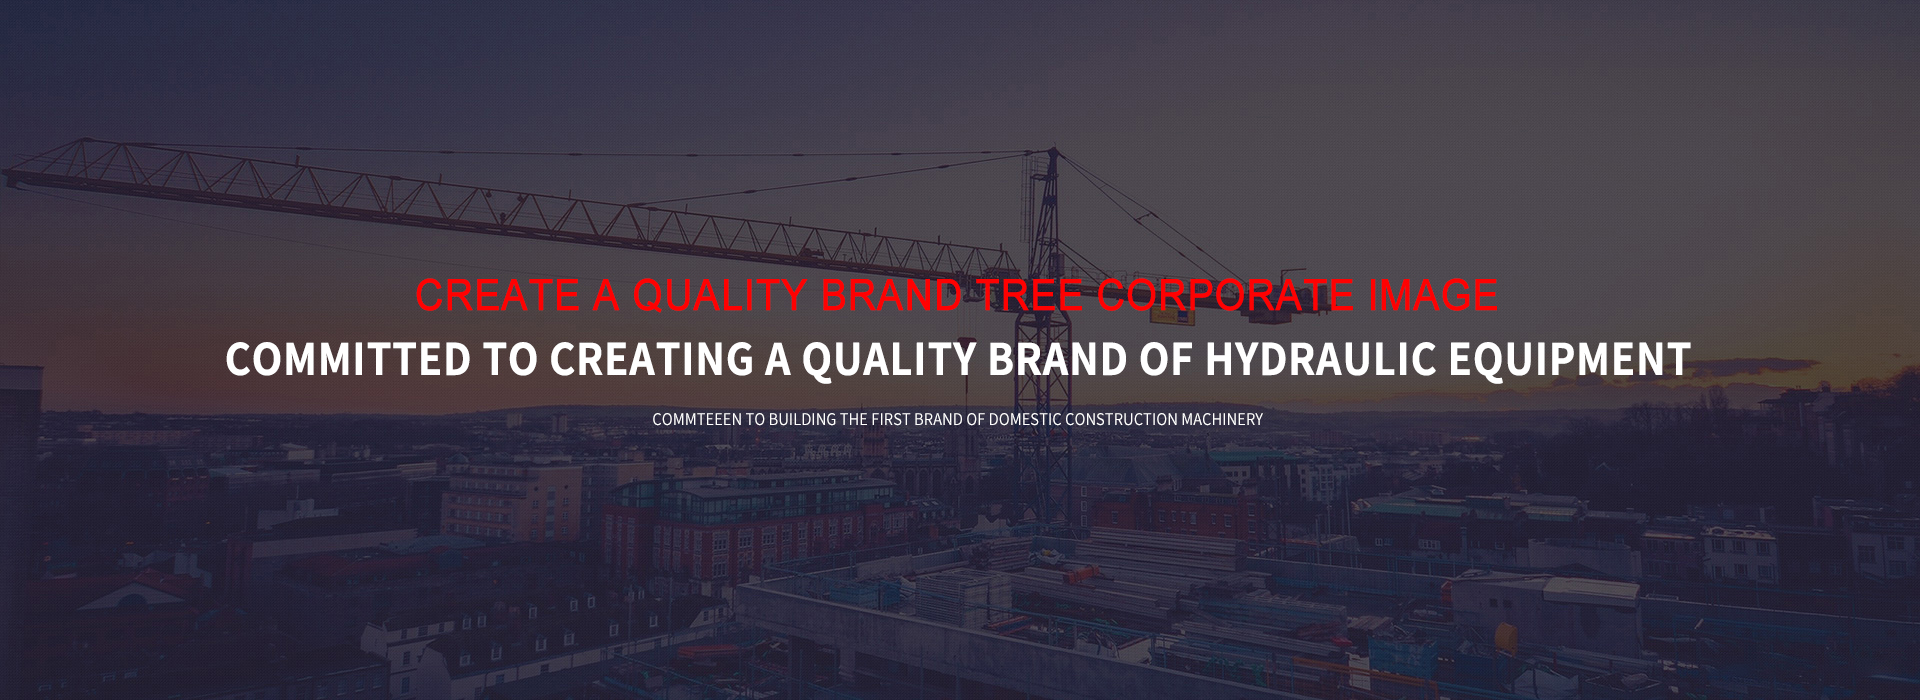 Create a quality brand of hydraulic equipment